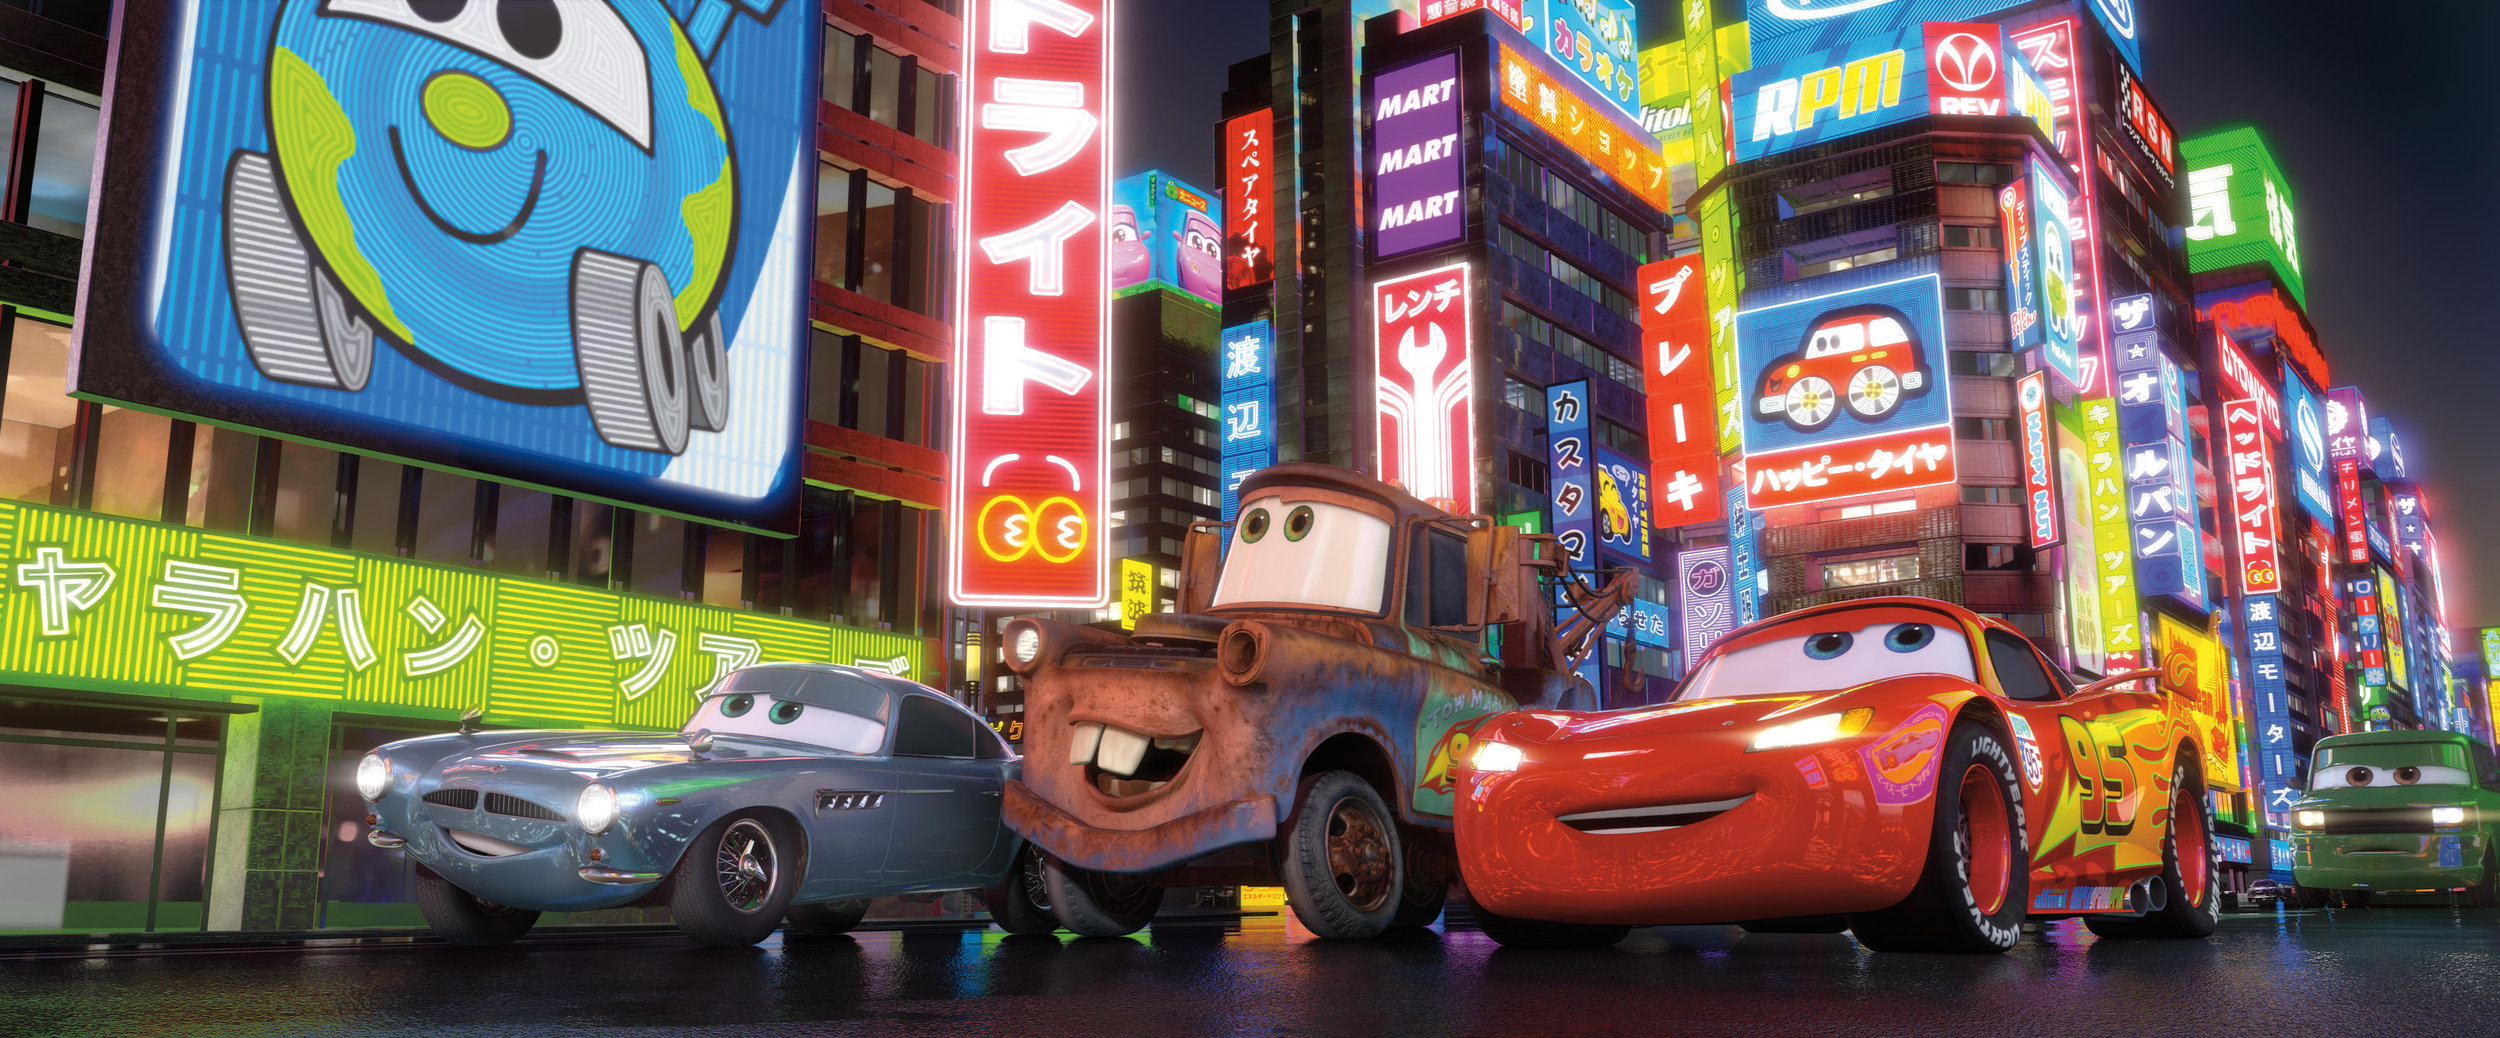 Movie Review Cars 2 Every Movie Has A Lesson